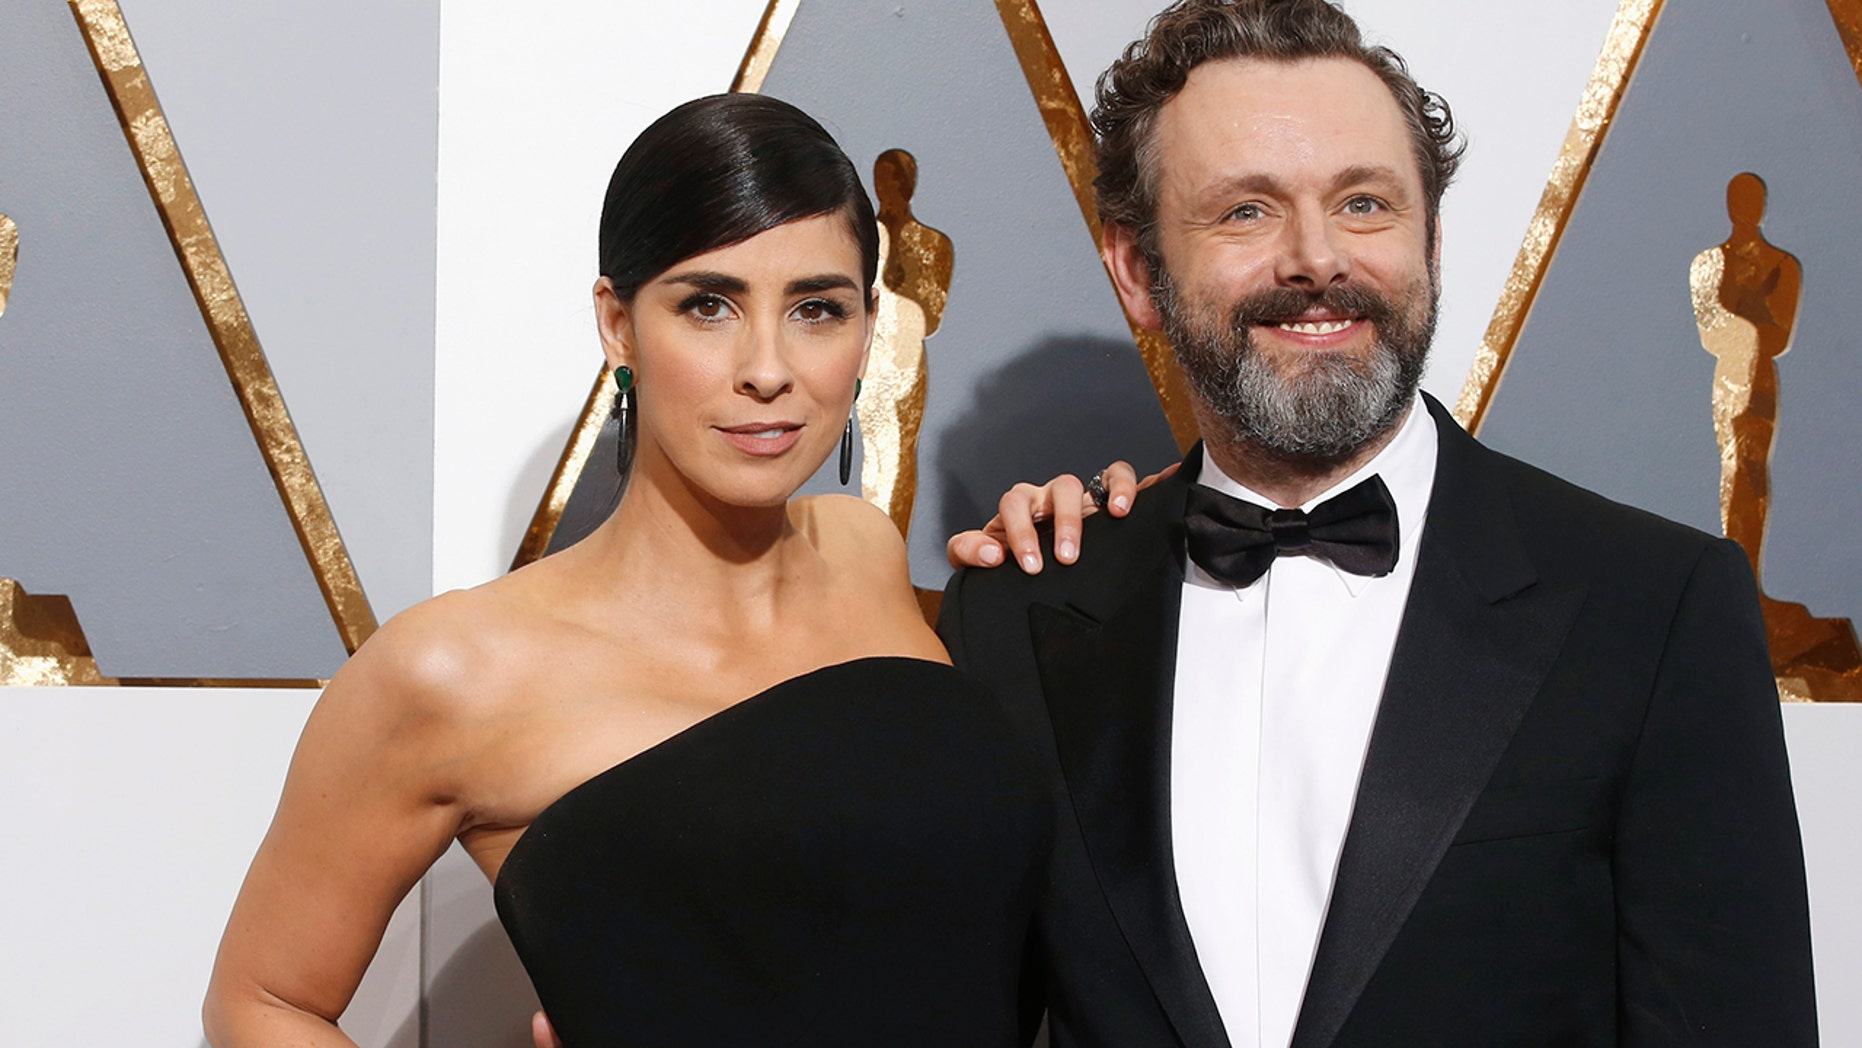 Michael Sheen says Sarah Silverman split was due to Brexit